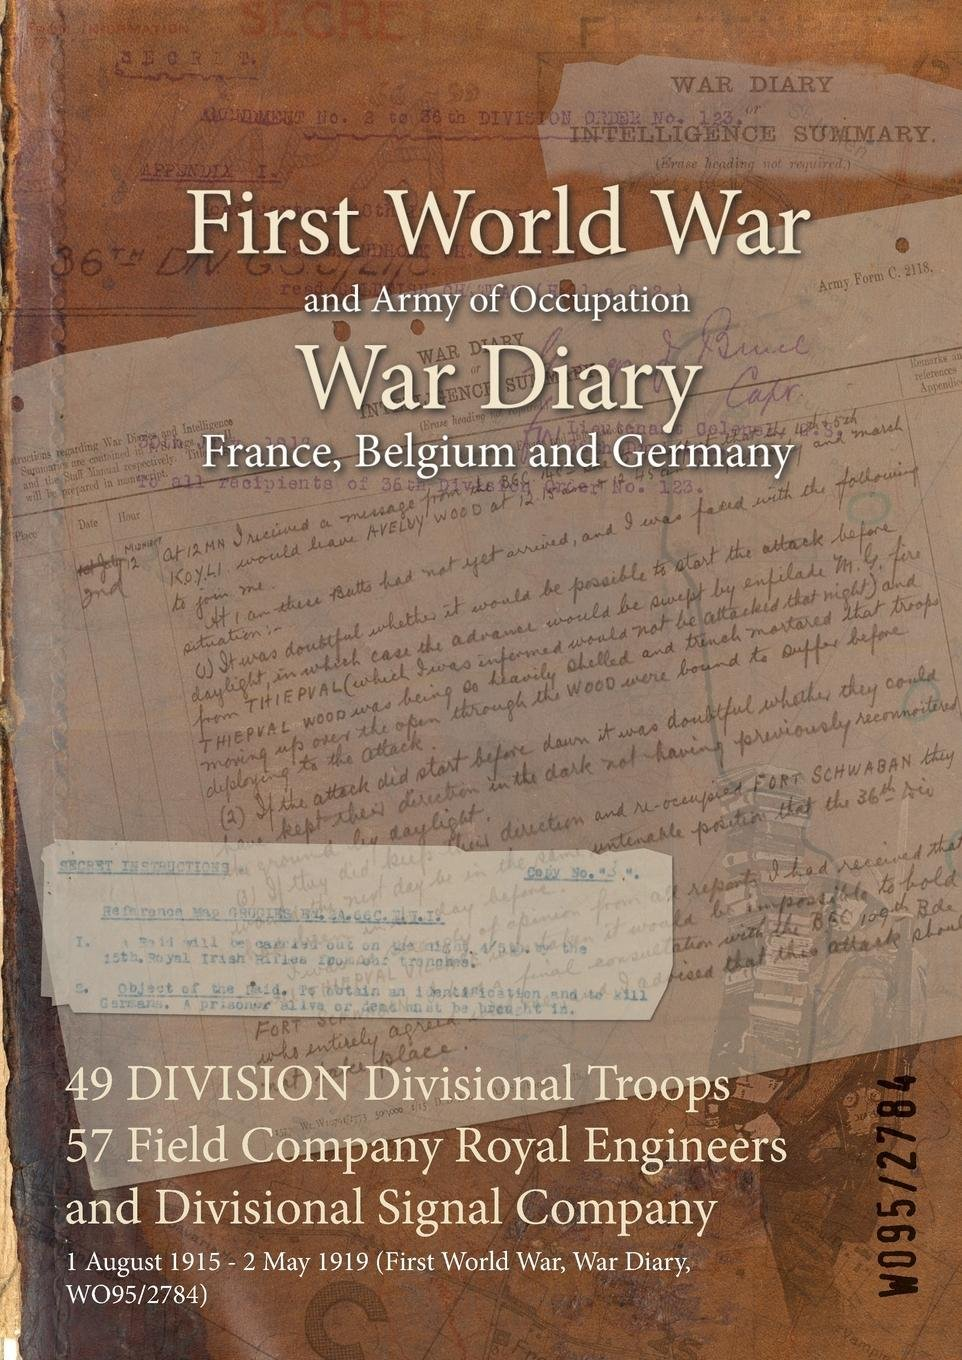 49 Division Divisional Troops 57 Field Company Royal Engineers and Divisional Signal Company: 1 August 1915 - 2 May 1919 (First World War, War Diary, Wo95/2784) pdf